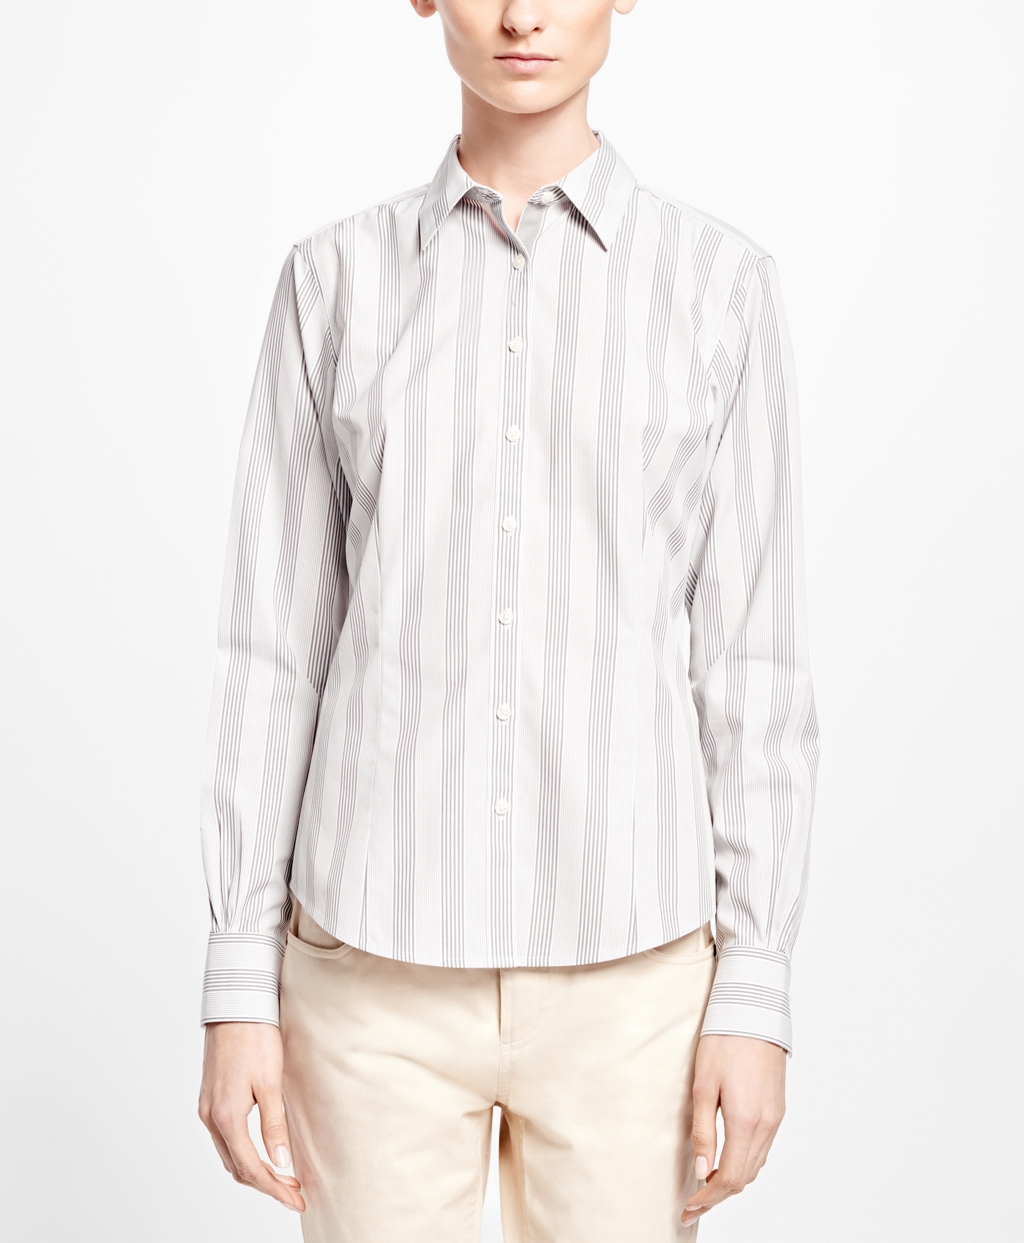 Lyst brooks brothers non iron fitted stripe dress shirt for Brooks brothers non iron shirts review